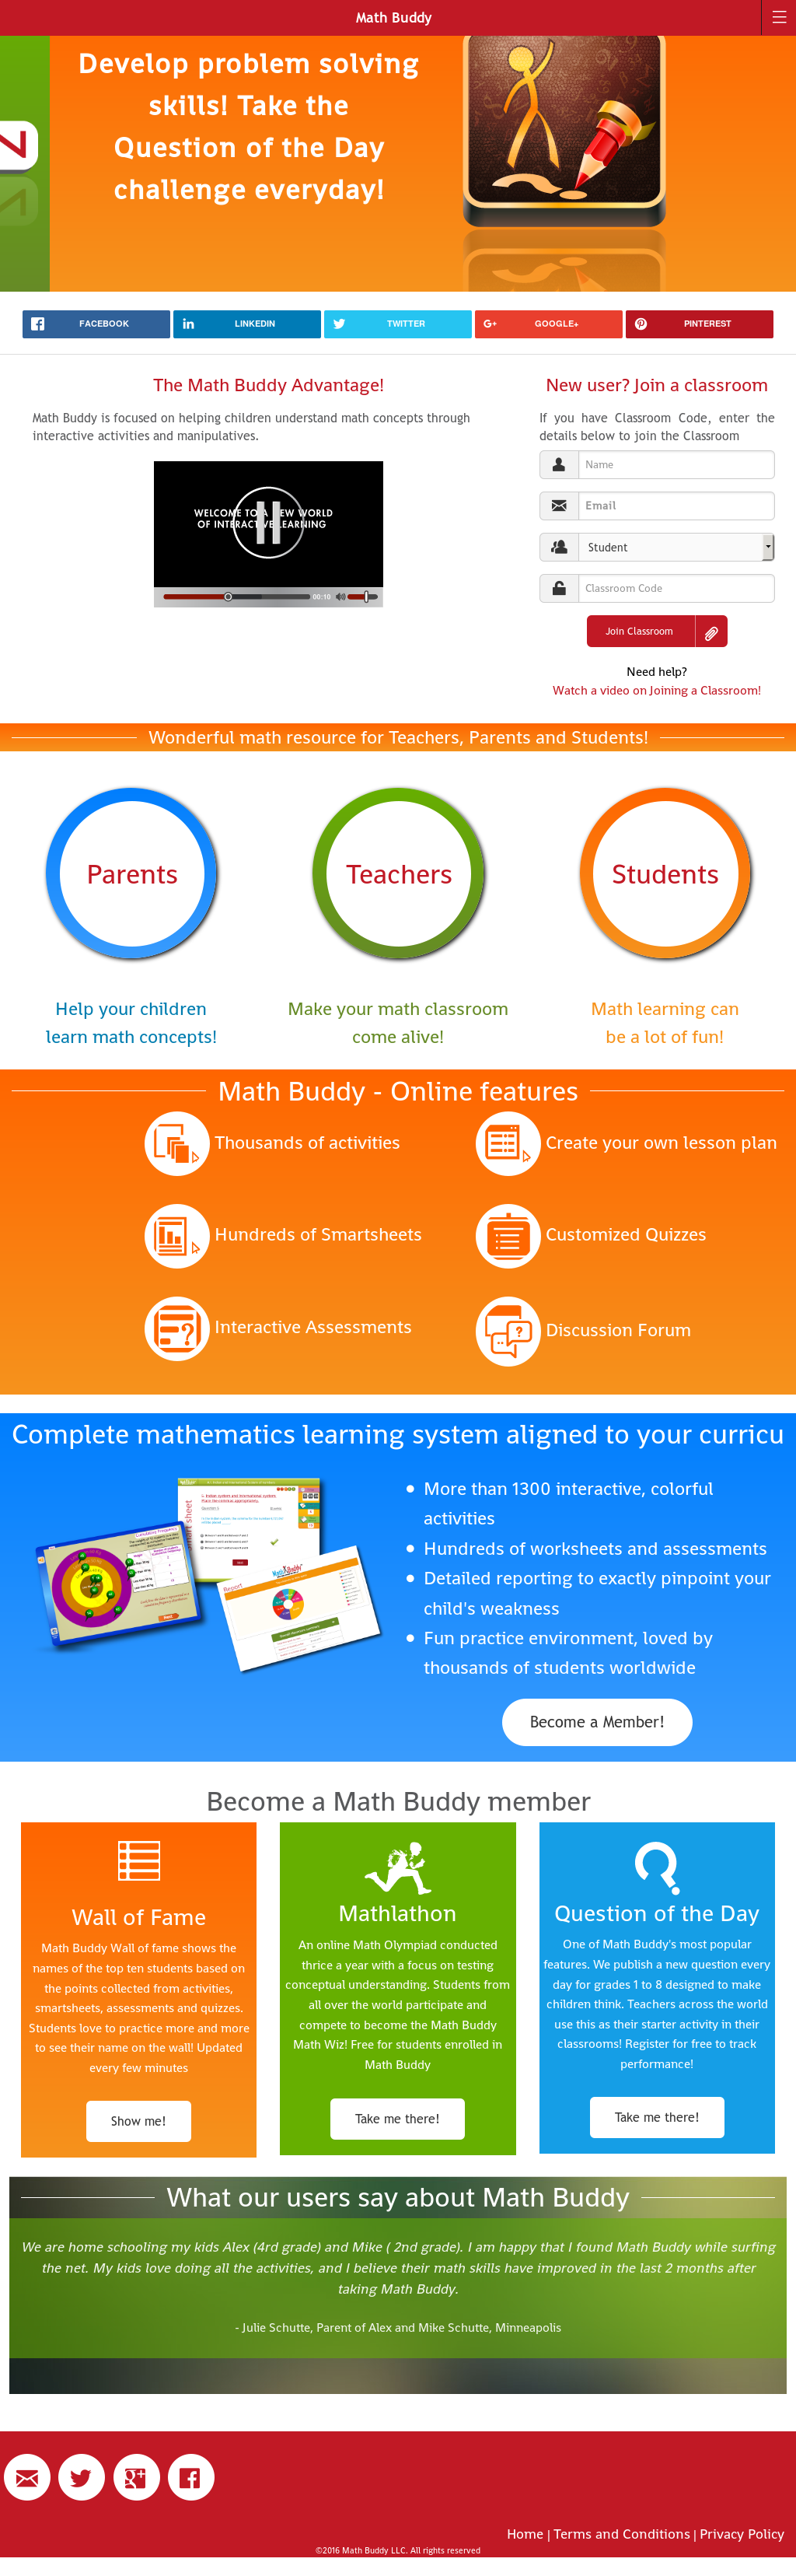 Math buddy Competitors, Revenue and Employees - Owler Company Profile